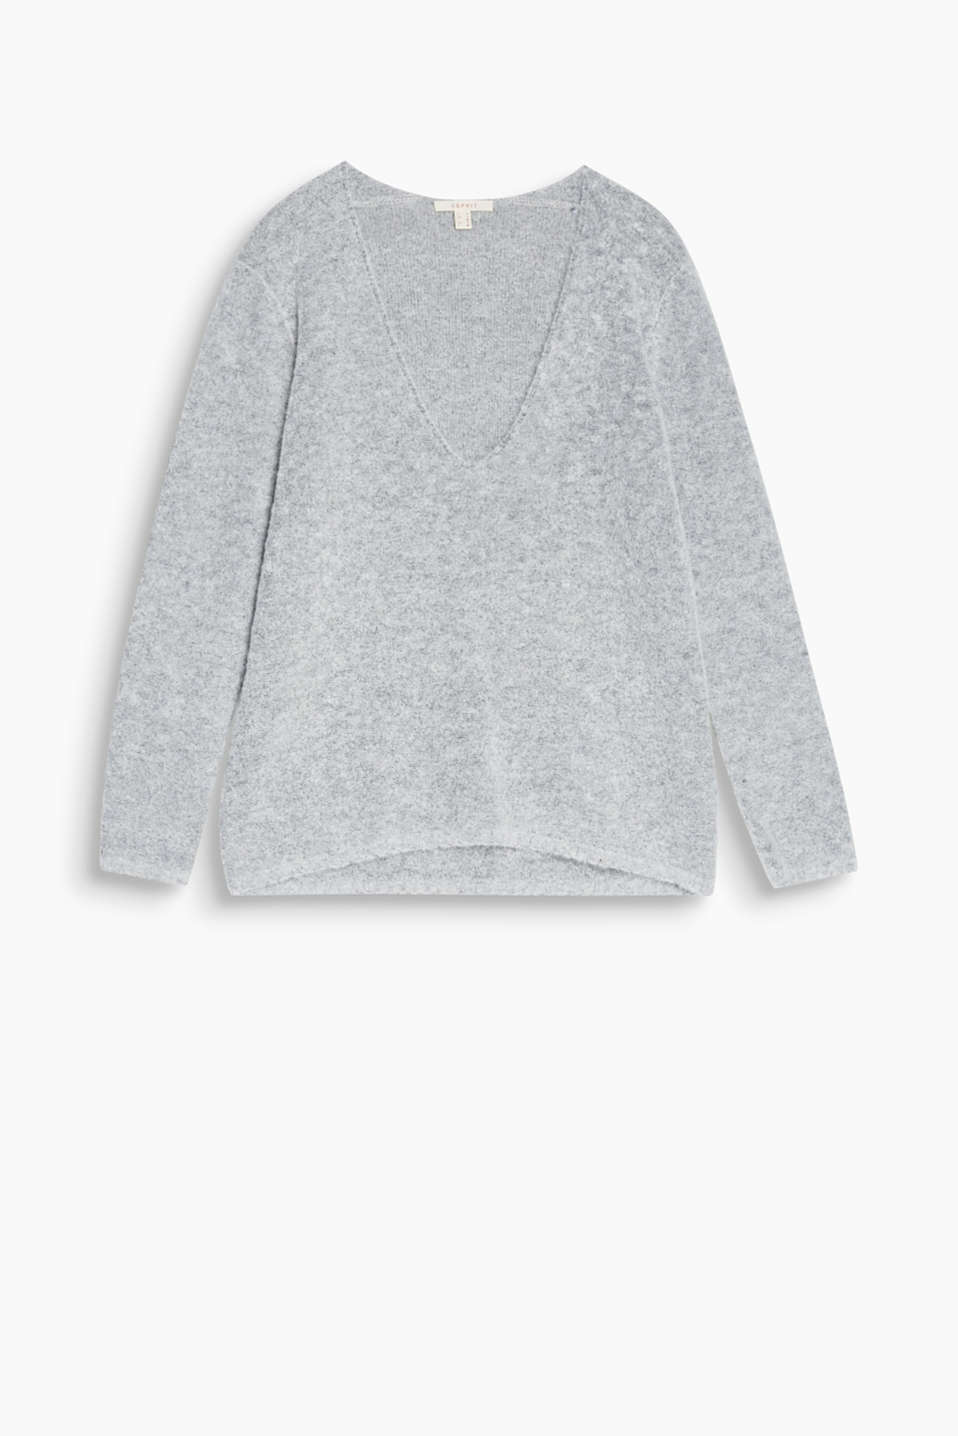 Soft and voluminous: the mini bouclé gives this casual jumper with a large V-neck a cosy feeling!